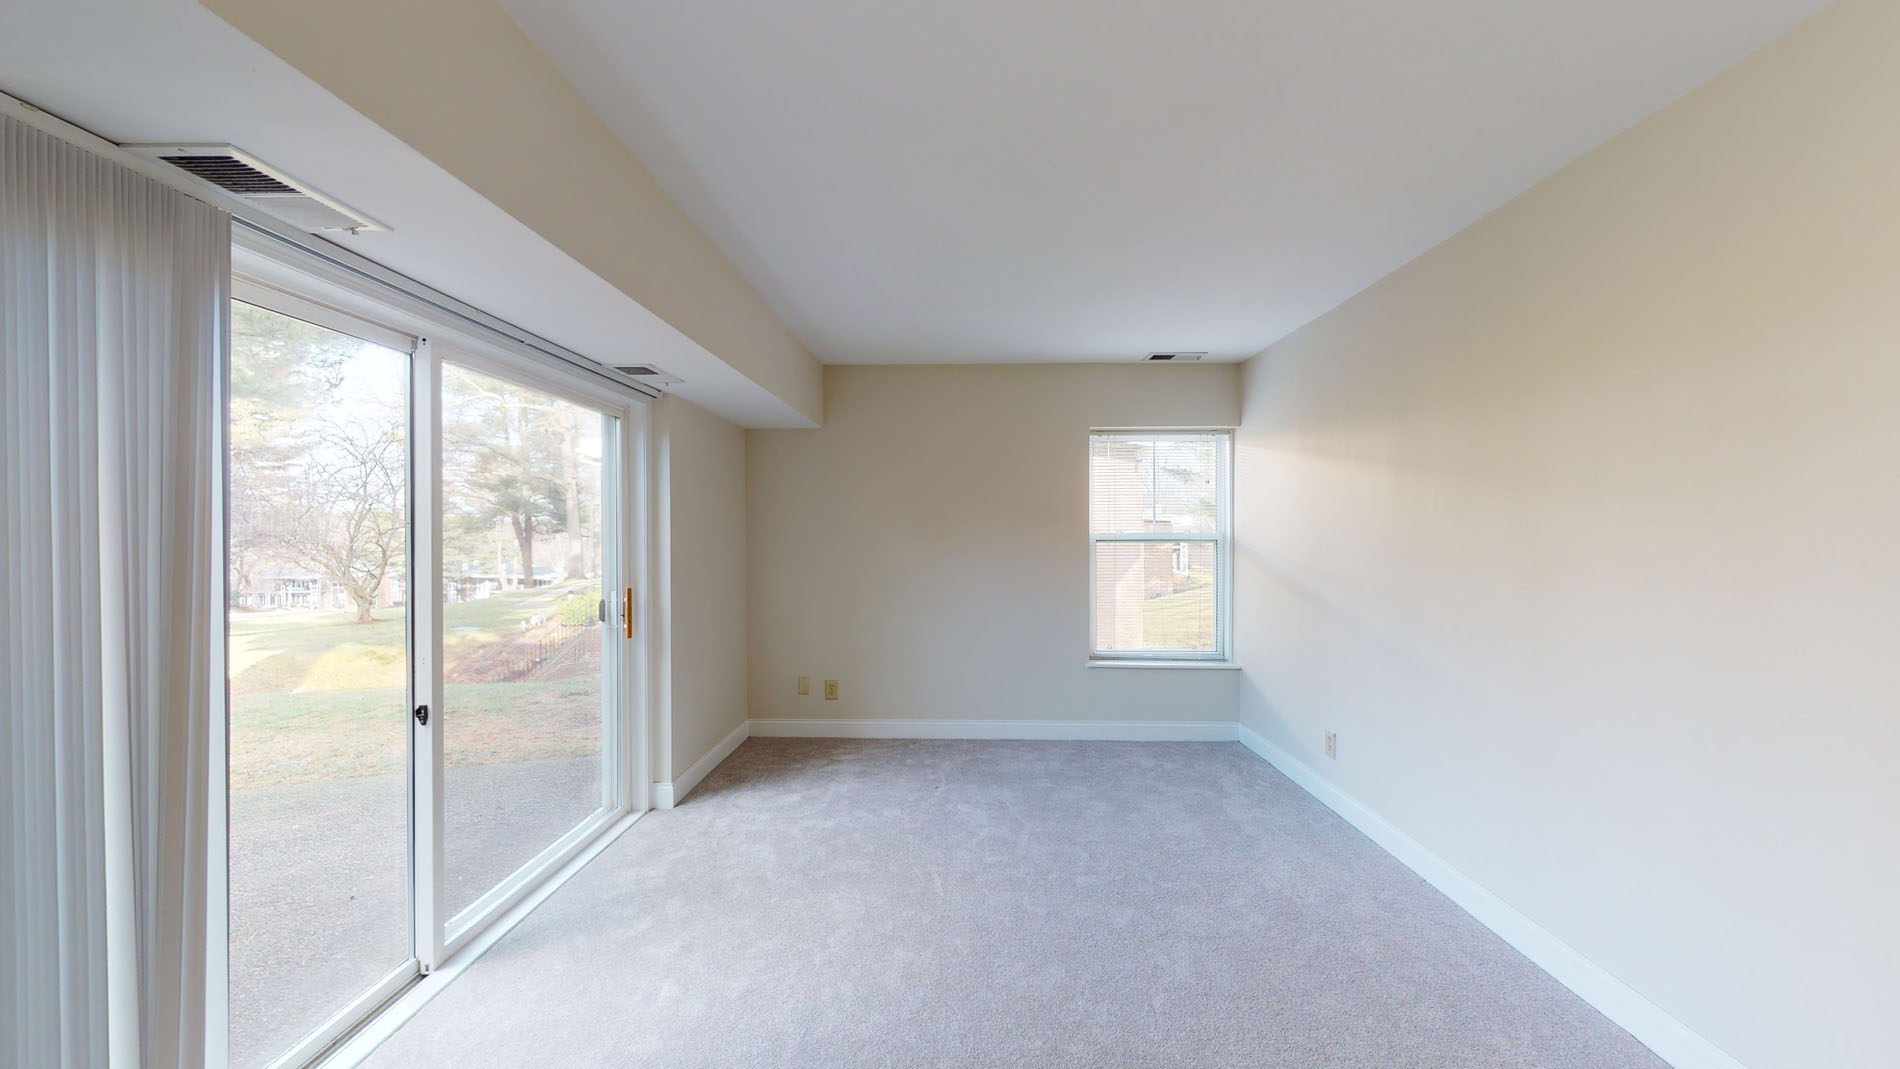 1 Bed, 1 Bath apartment in Norwood for $1,589